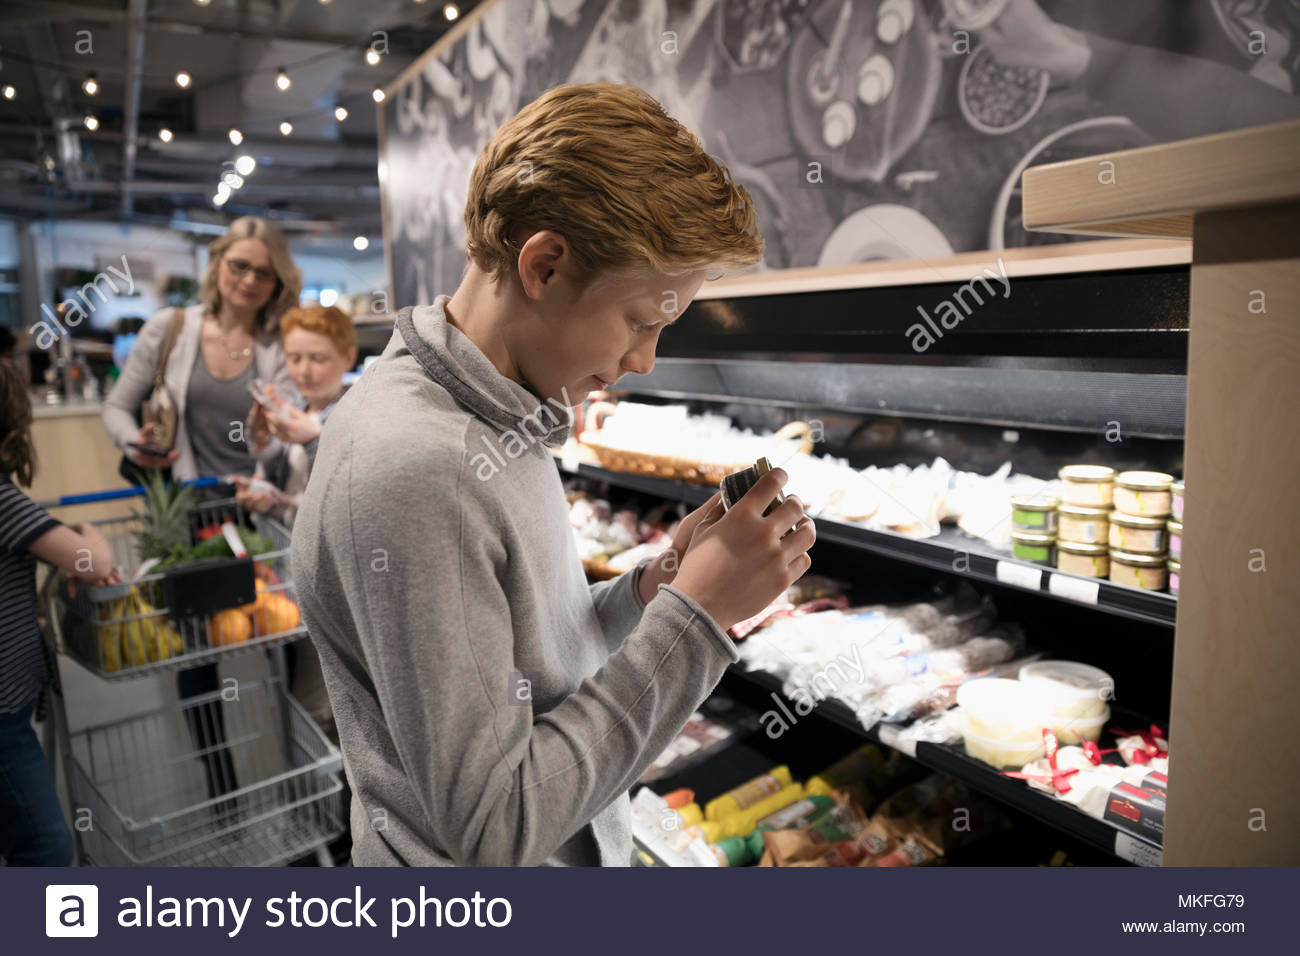 Boy grocery shopping, browsing cheese in market - Stock Image